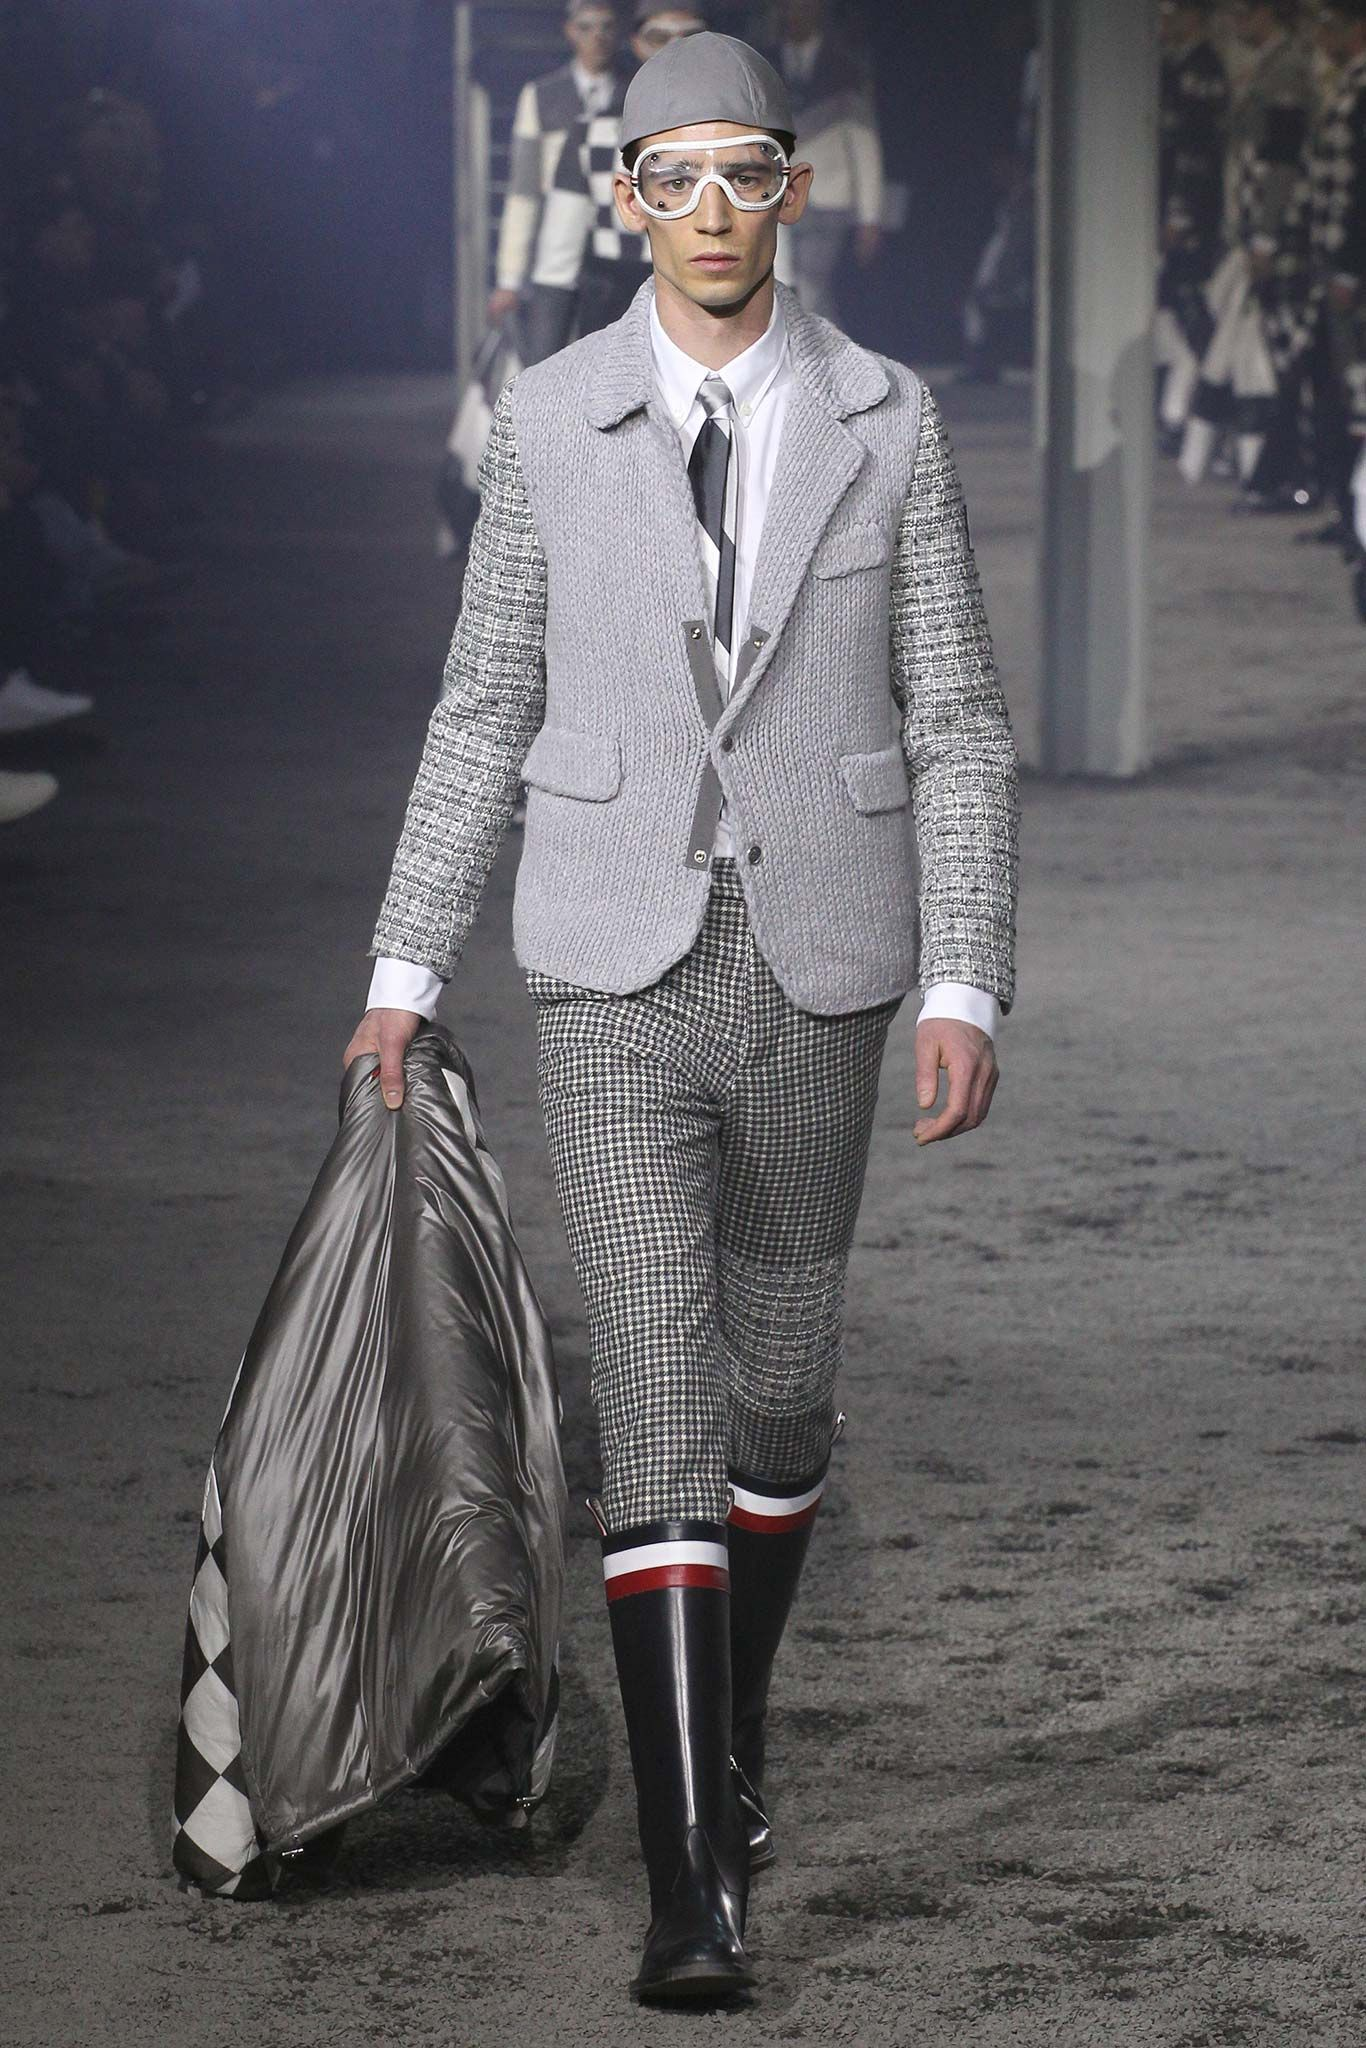 96800f89d Moncler Gamme Bleu Fall 2015 Menswear - Collection - Gallery - Style ...